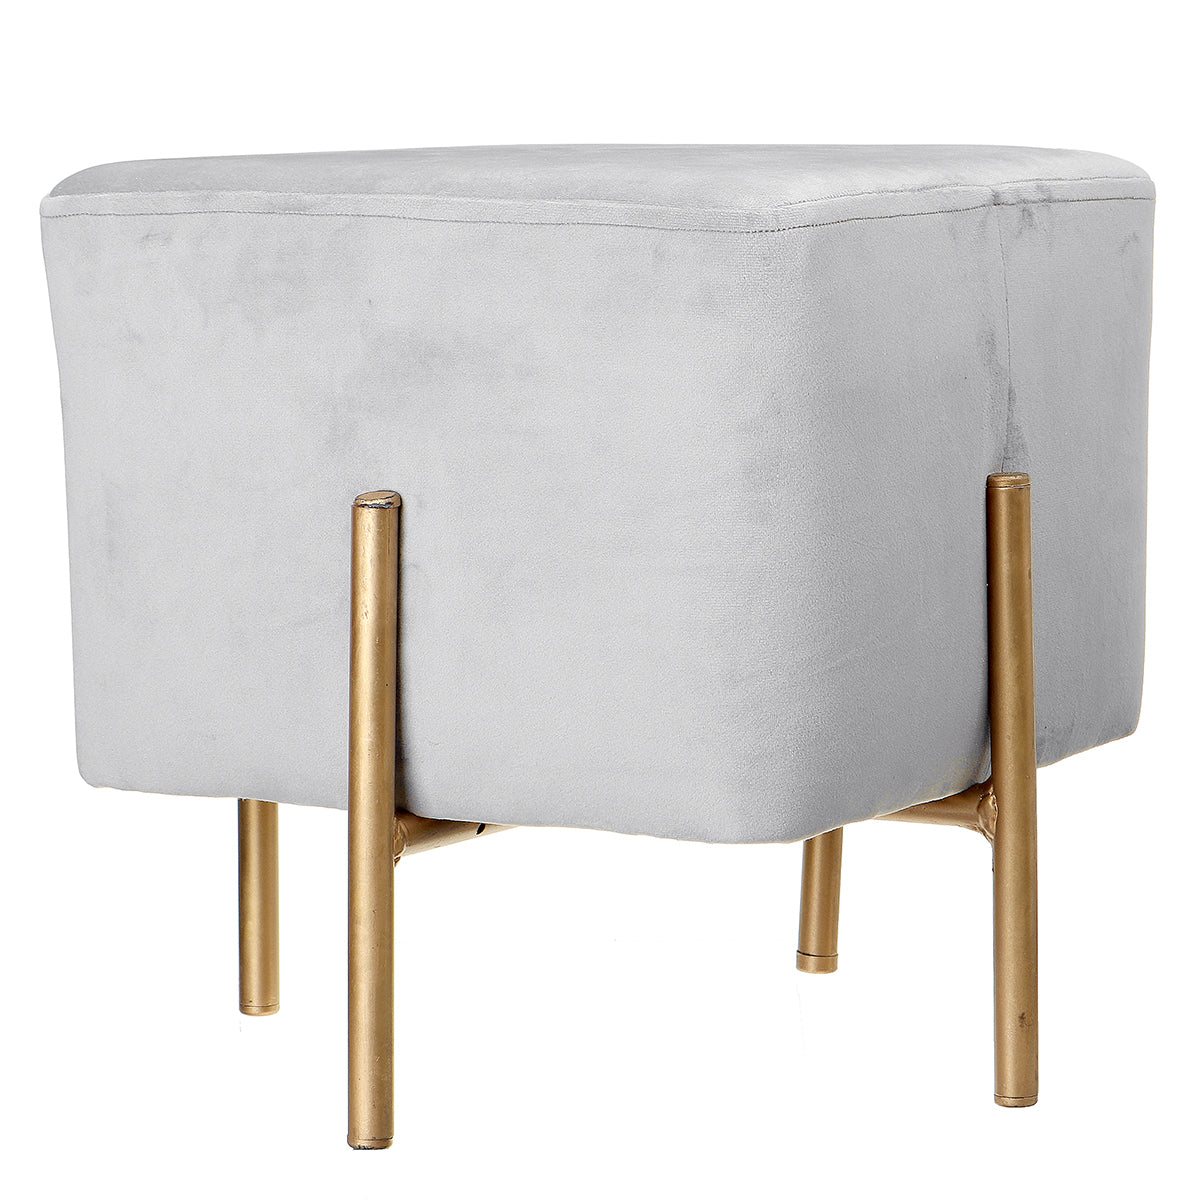 Velvet Cubic Stool Fabric Shoe Bench Seat Stool Modern Chair Ottomans Sofa - bestgamingandoffice